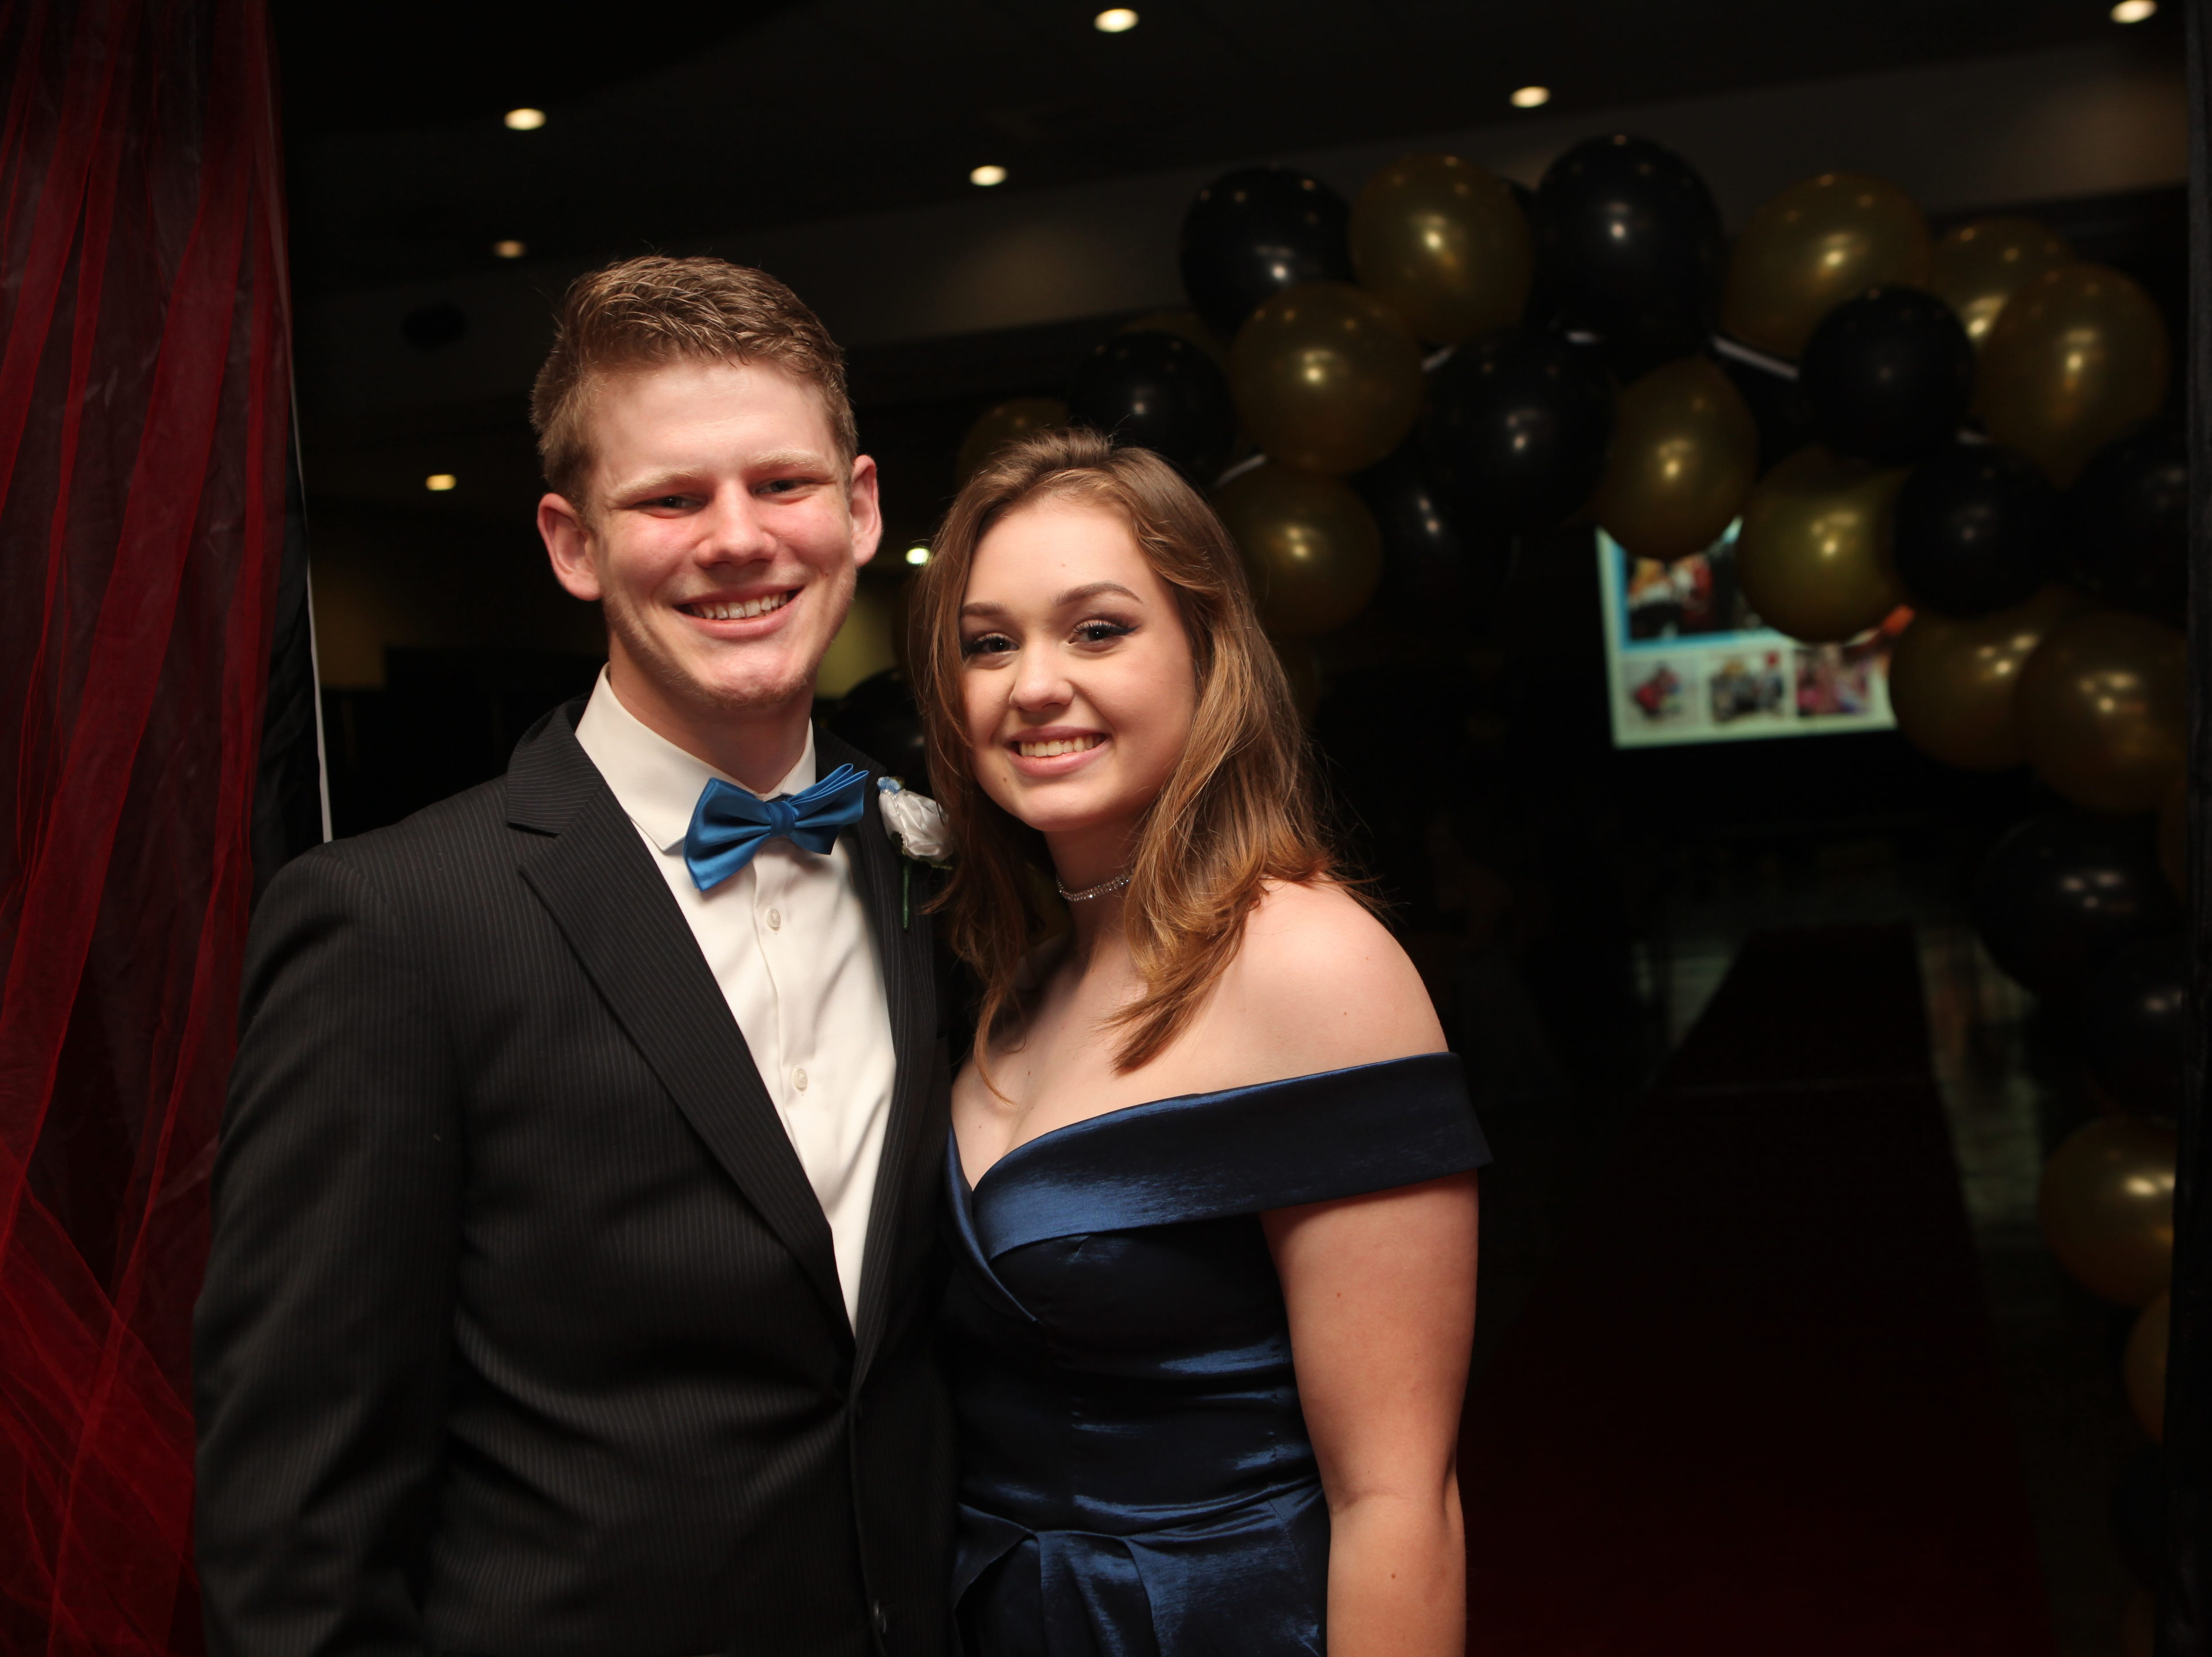 Kendra Smith and Jacob Schroeder at the Middle College 2019 prom at the APSU Ballroom on Friday, April 26, 2019.